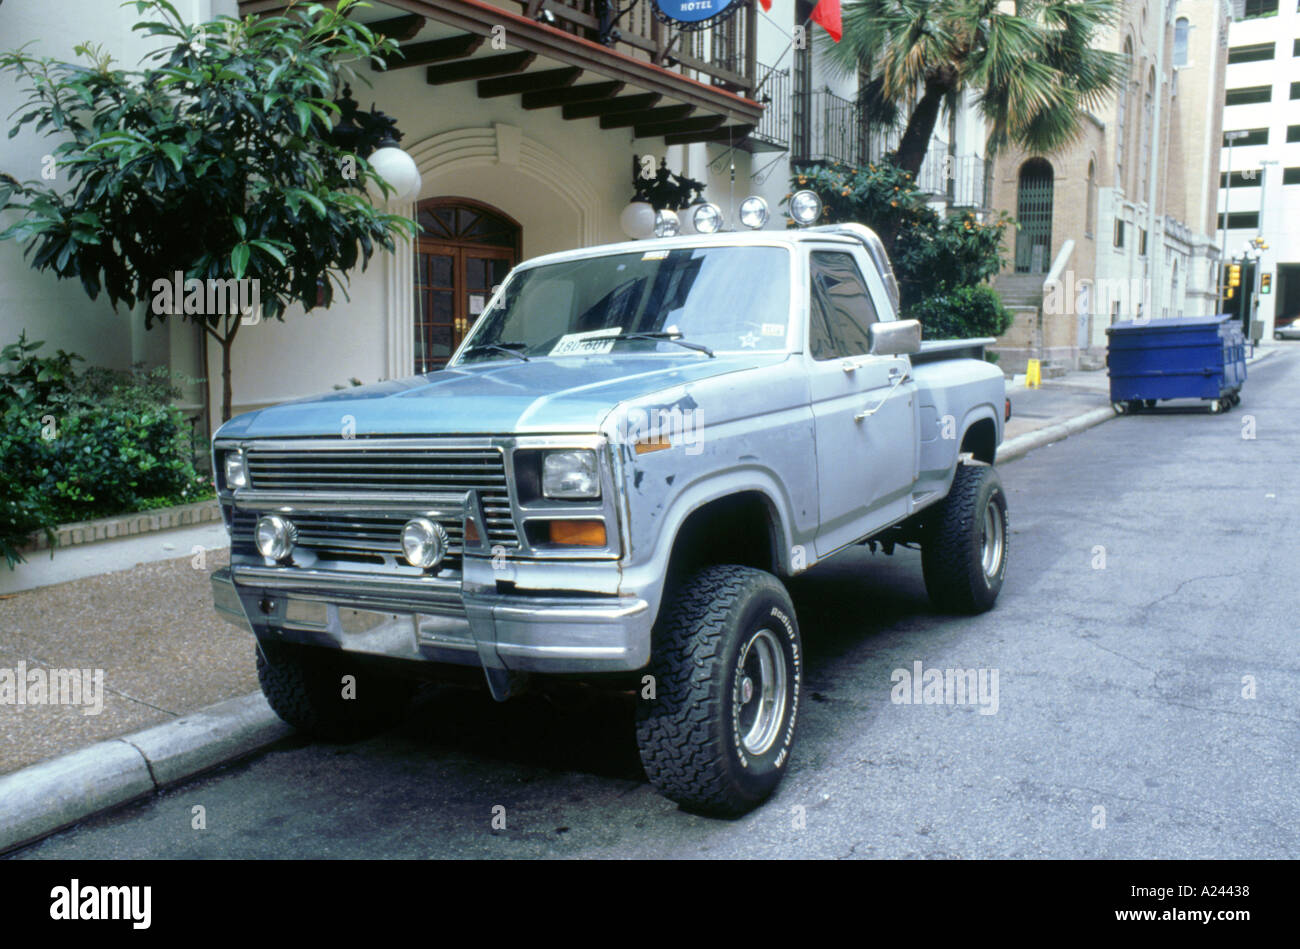 American Pick Up Truck Stock Photos & American Pick Up Truck Stock ...